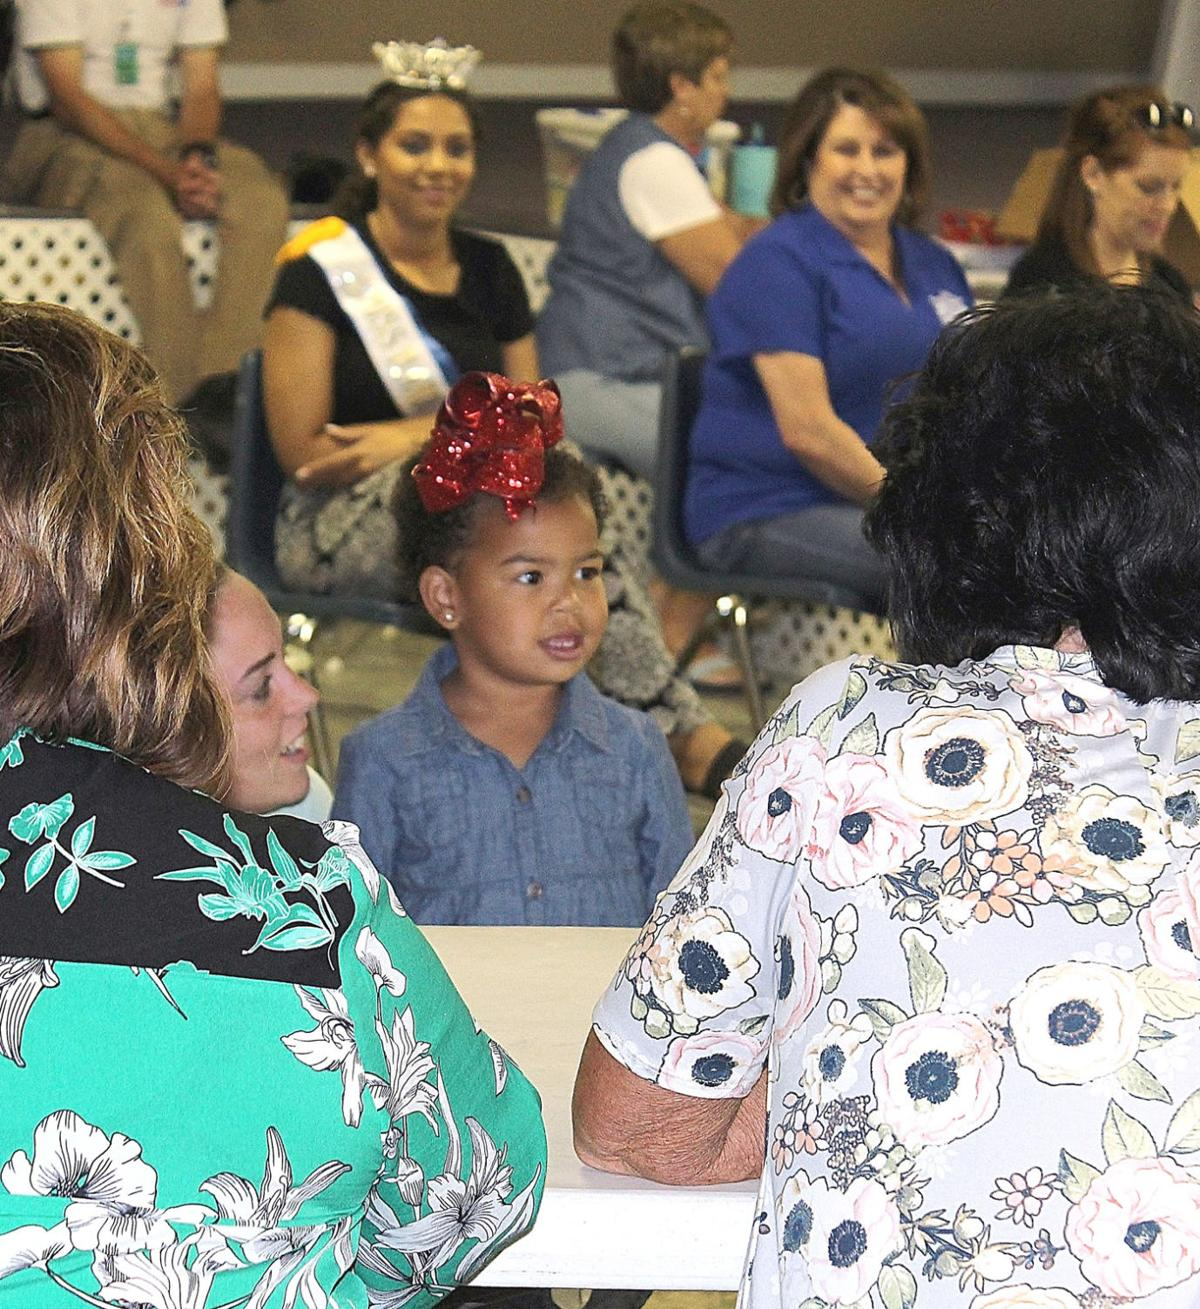 Pageant experience available for youngest fairgoers